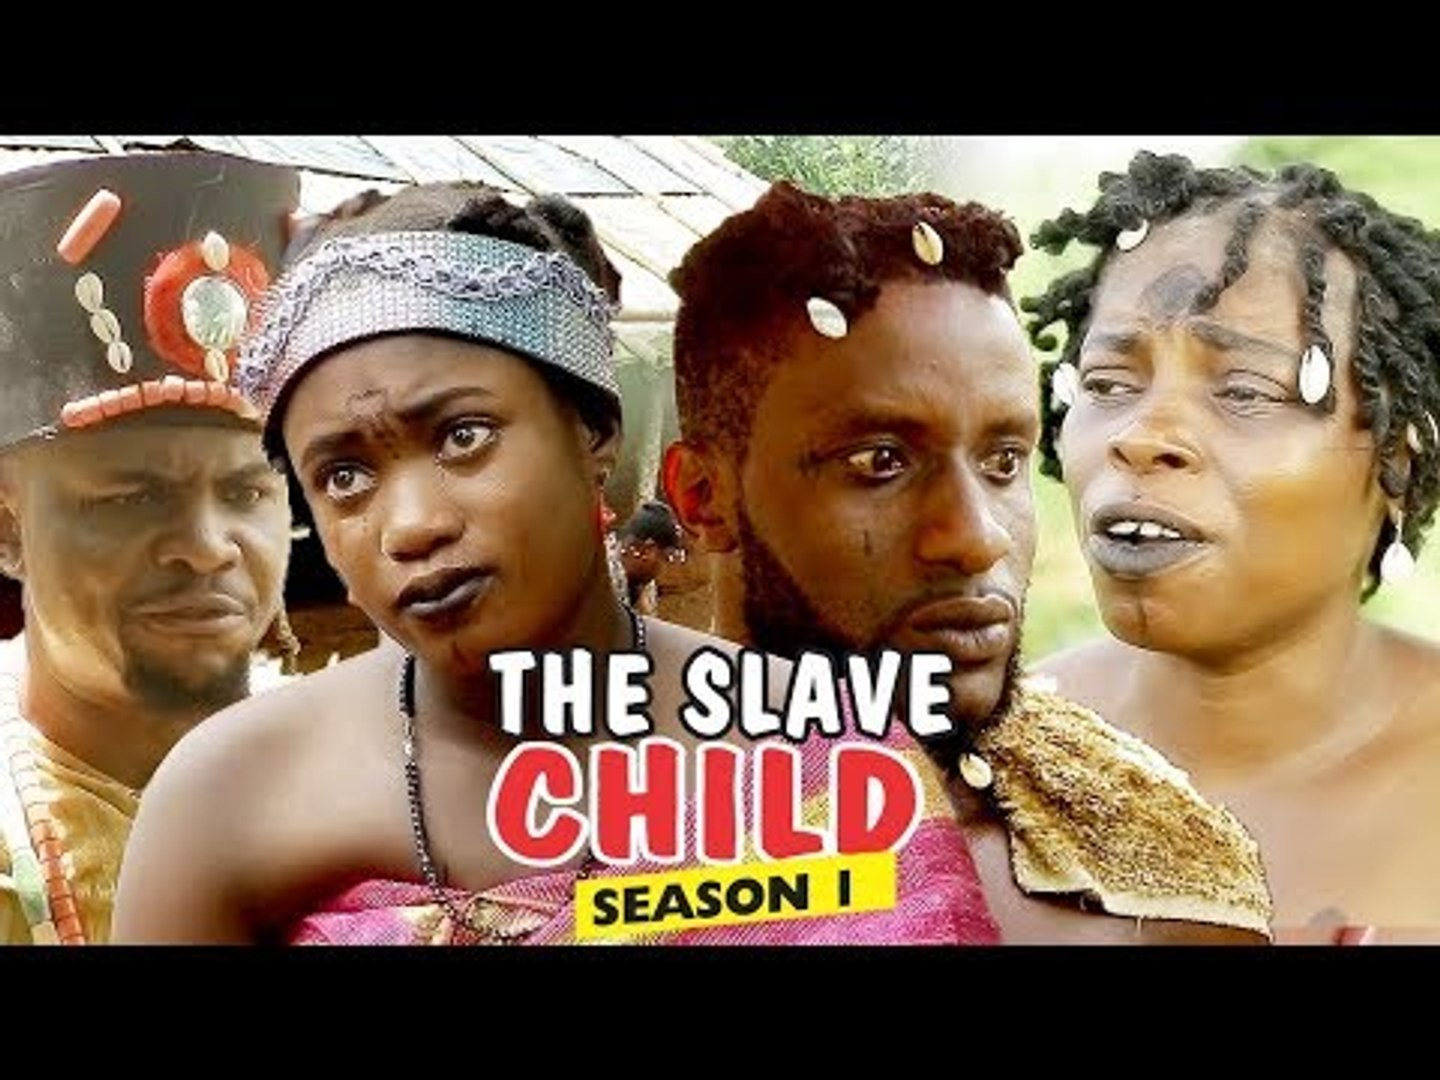 THE SLAVE CHILD 1 - LATEST NIGERIAN NOLLYWOOD MOVIES || TRENDING NOLLYWOOD MOVIES